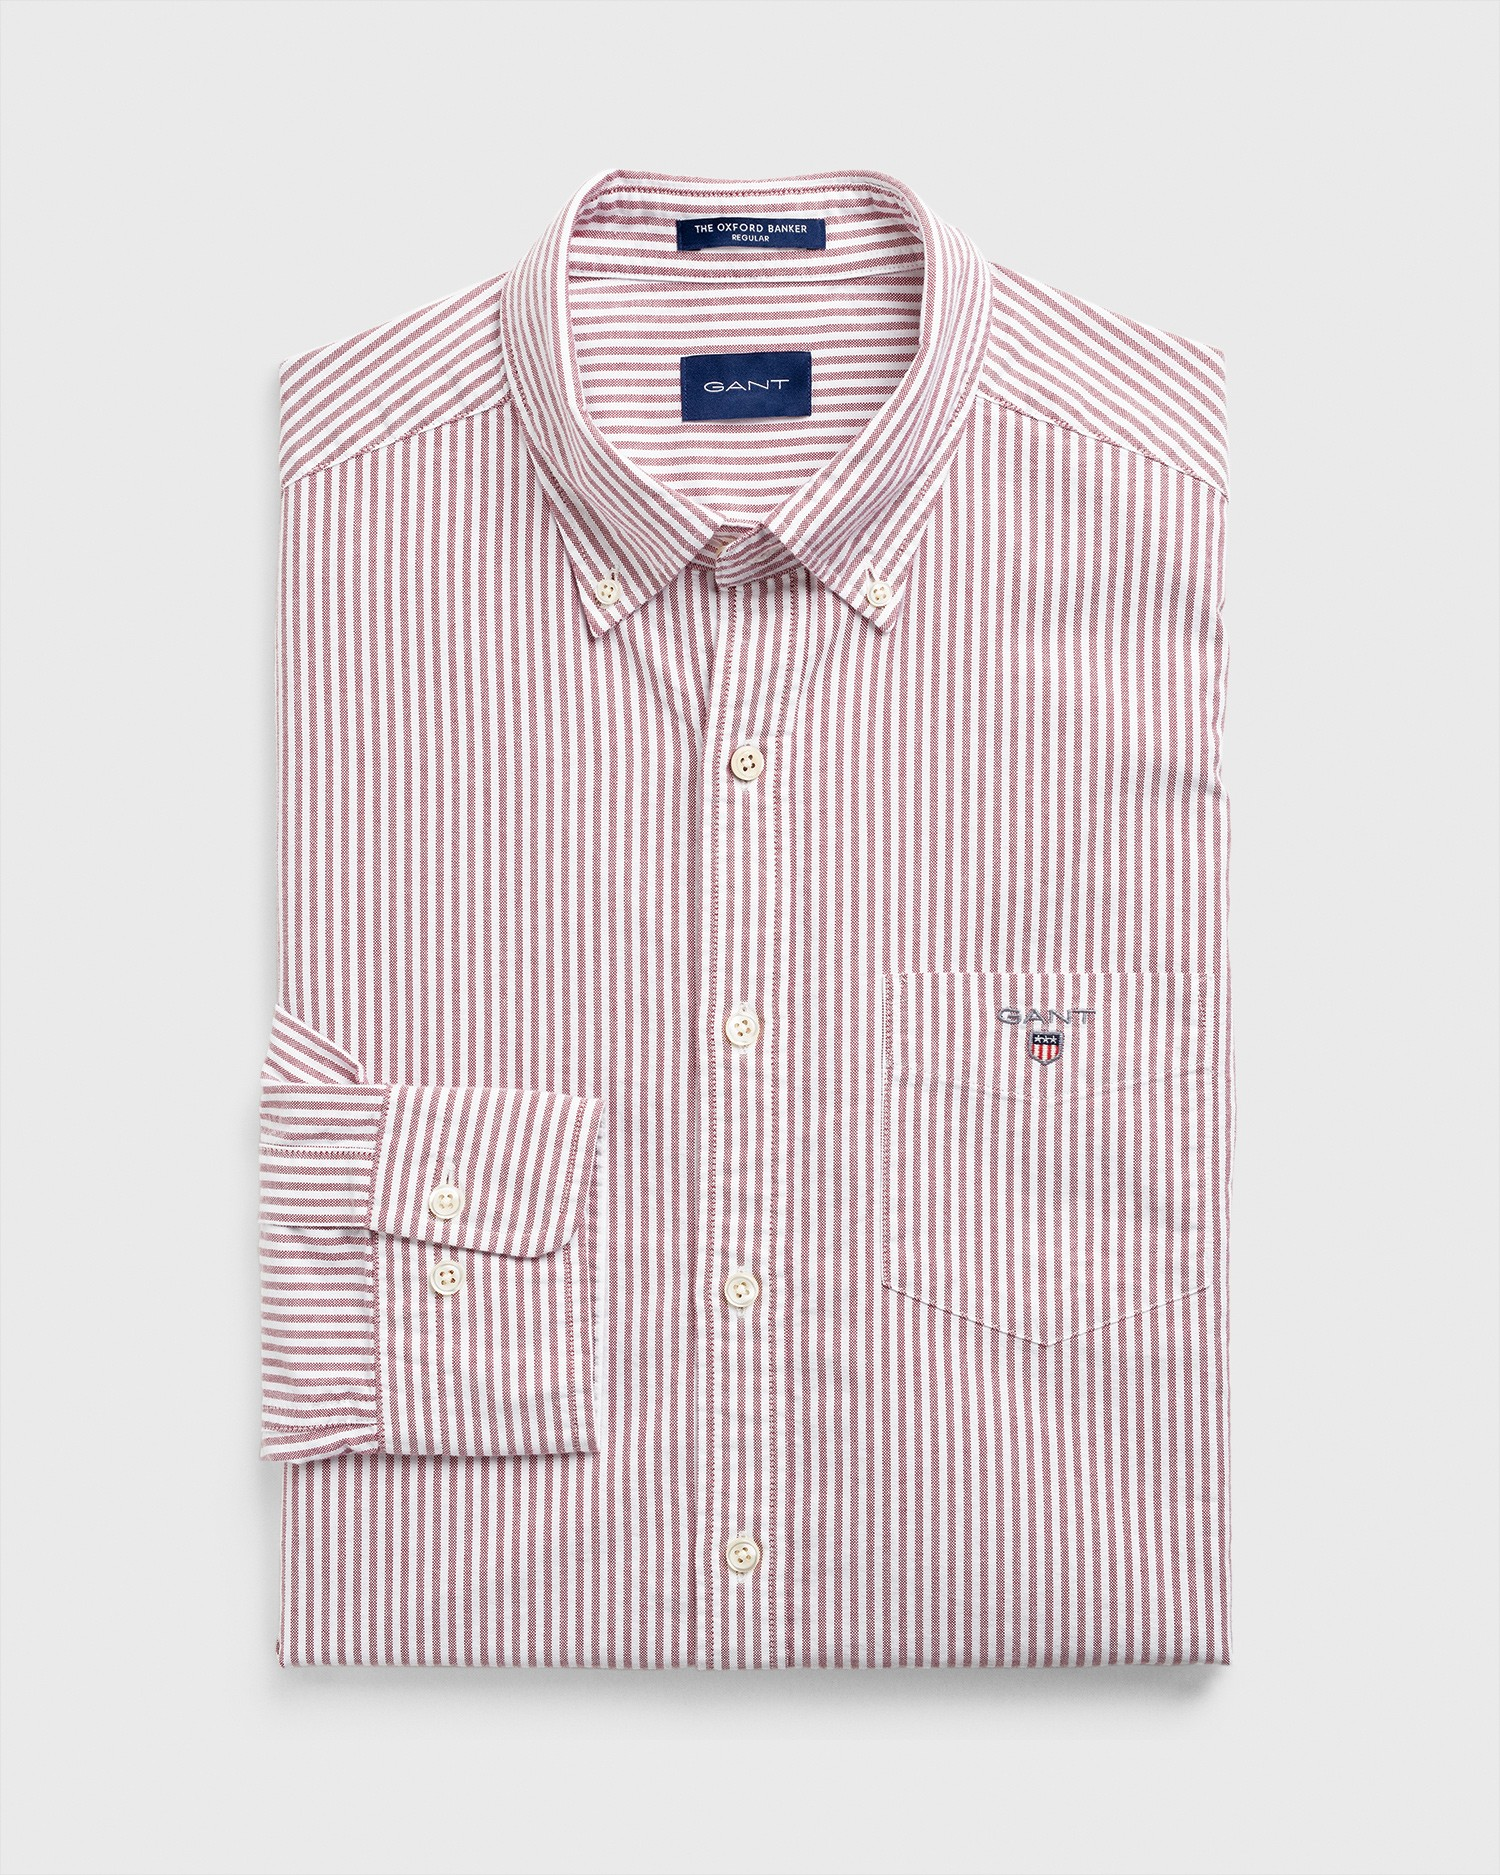 GANT Men's Oxford Banker Regular Fit Shirt - 3056700